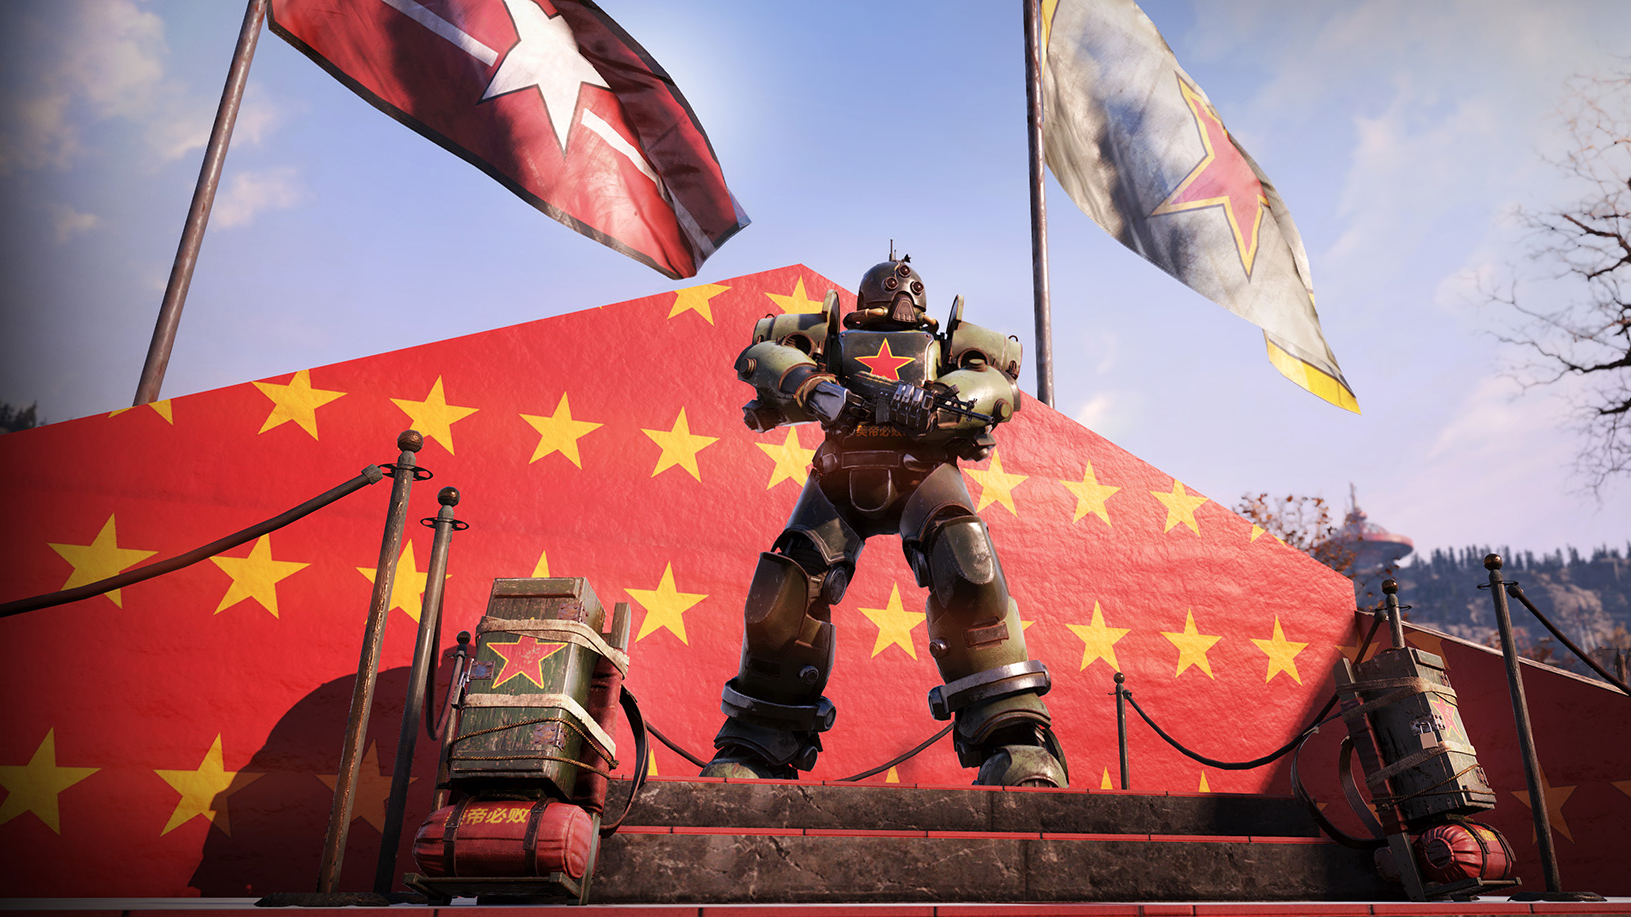 Fallout 76 Robot Won't Stop Spamming Players With Communist Propaganda